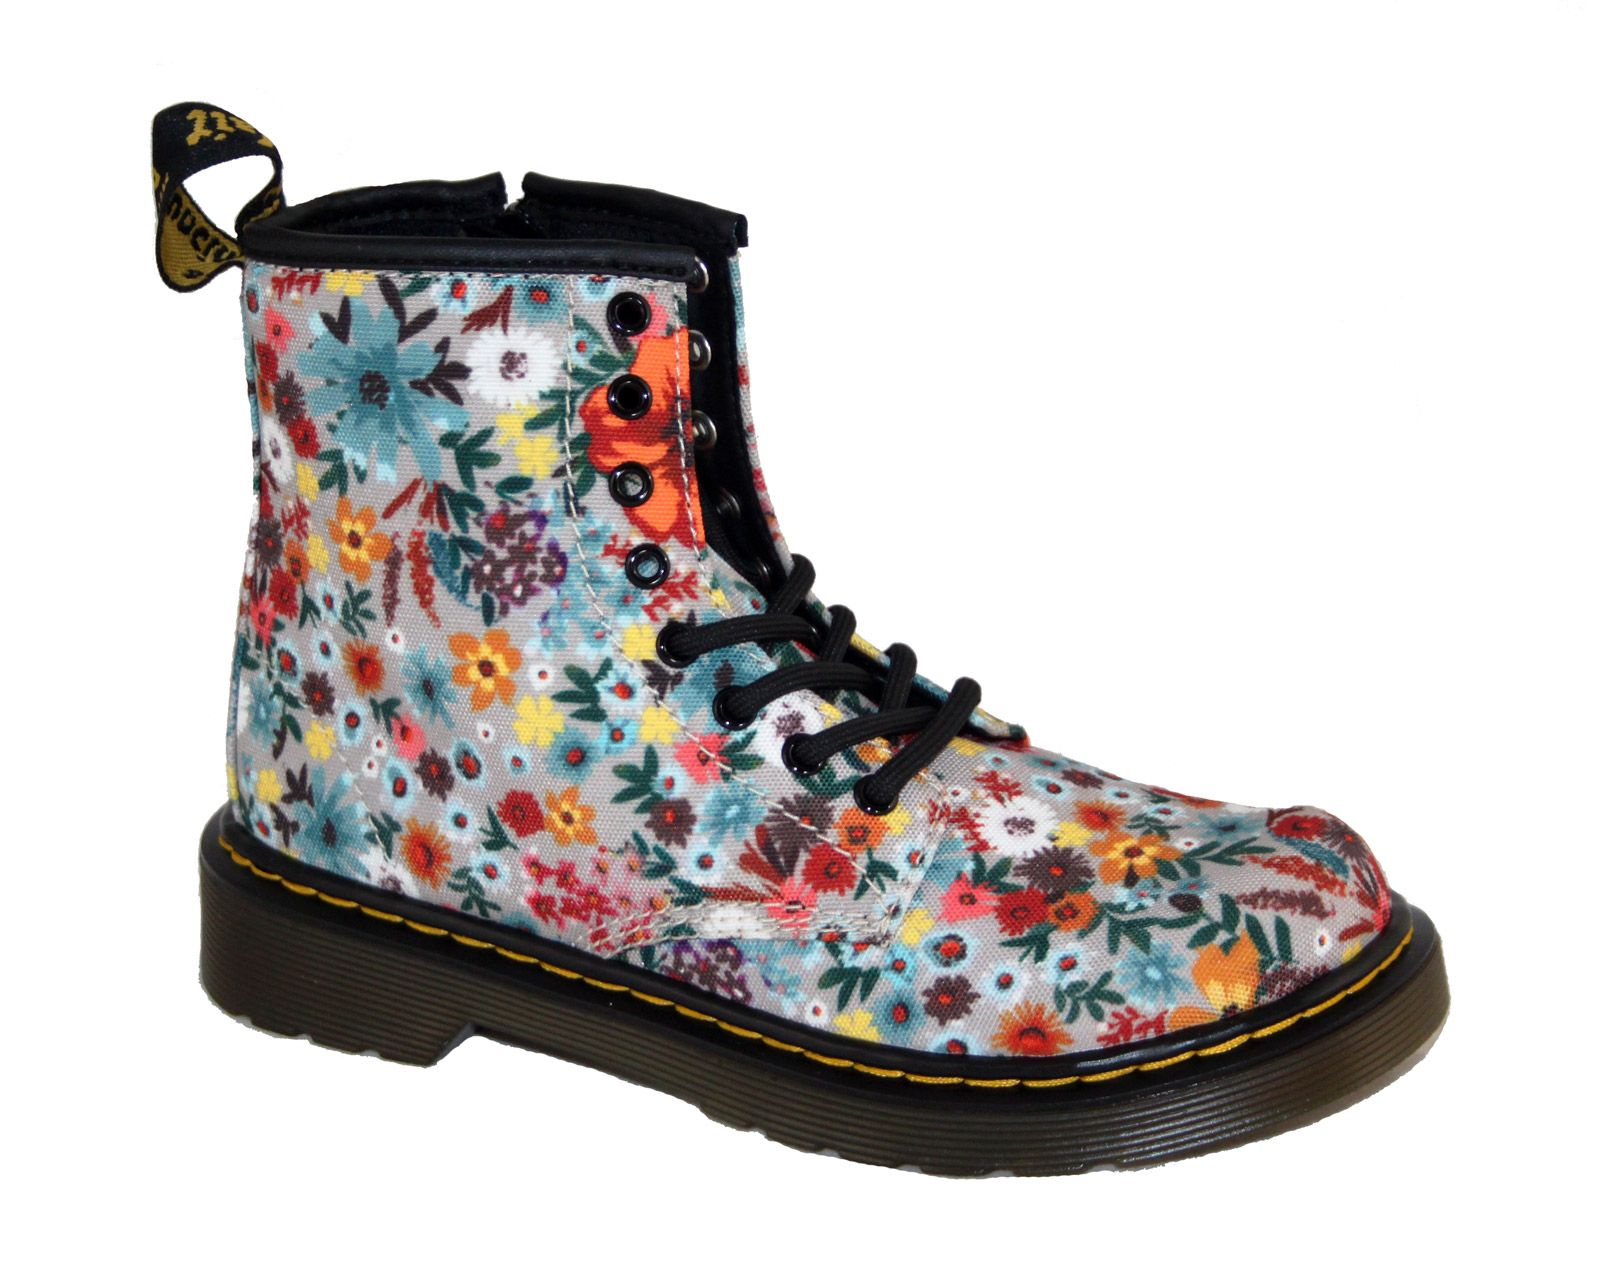 approccio guardaroba genere  Dr. Martens Junior Delaney Floral Canvas 8-Eye Boot | Dr. Martens - Kids |  China Blue Shoes